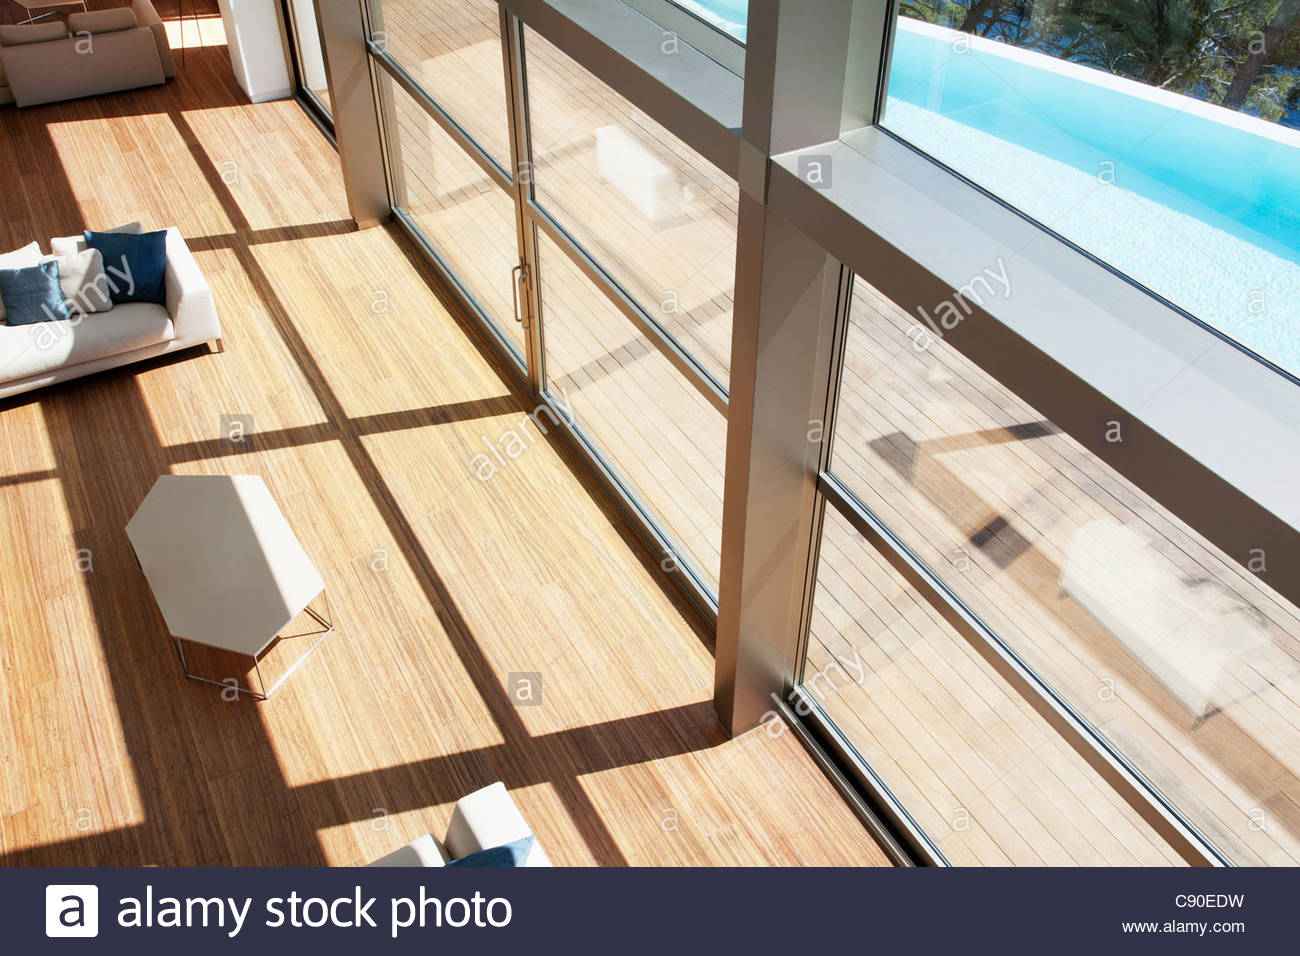 Windows in modern house - Stock Image